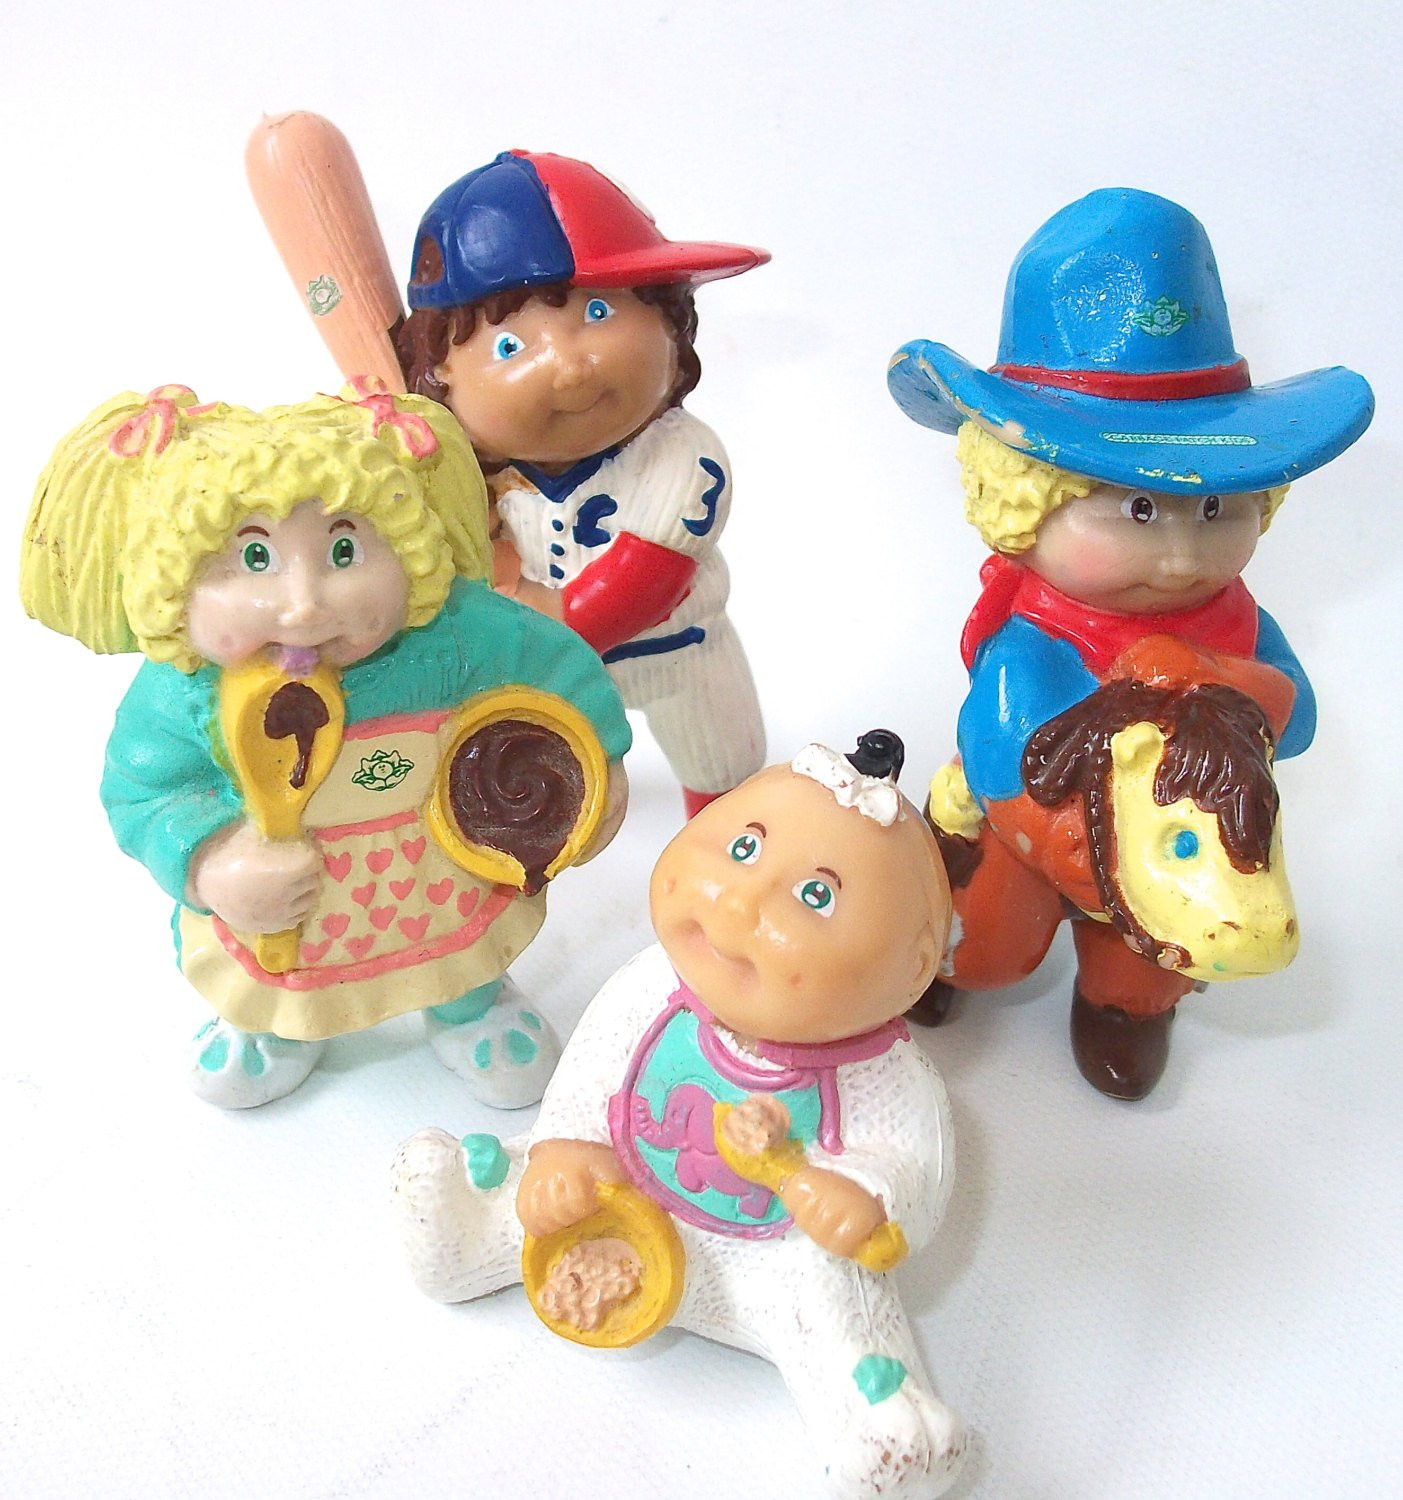 Best Of Vintage Cabbage Patch Kids Doll Figures Cabbage by Old Cabbage Patch Doll Of Wonderful 47 Ideas Old Cabbage Patch Doll